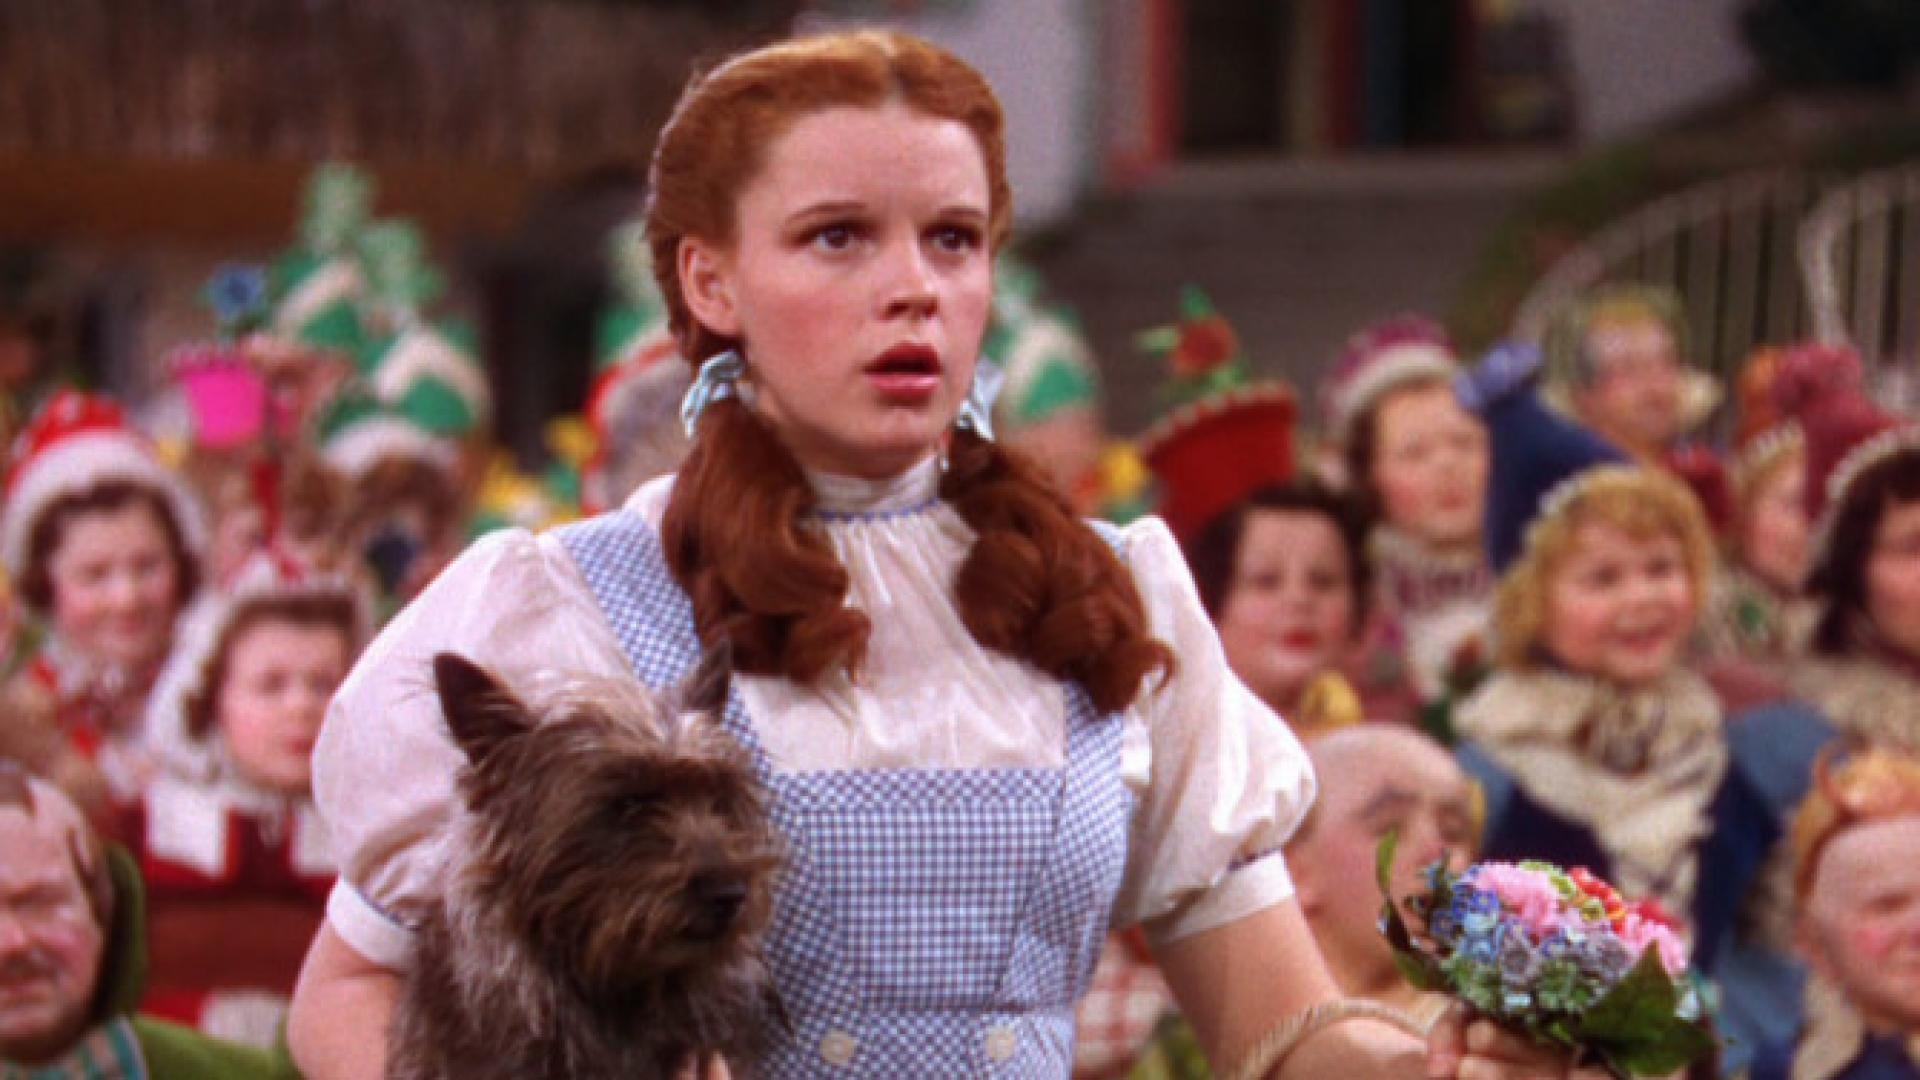 Manhandled By Munchkins Judy Garland Molested On Wizard Of Oz Set Book Claims Inside Edition